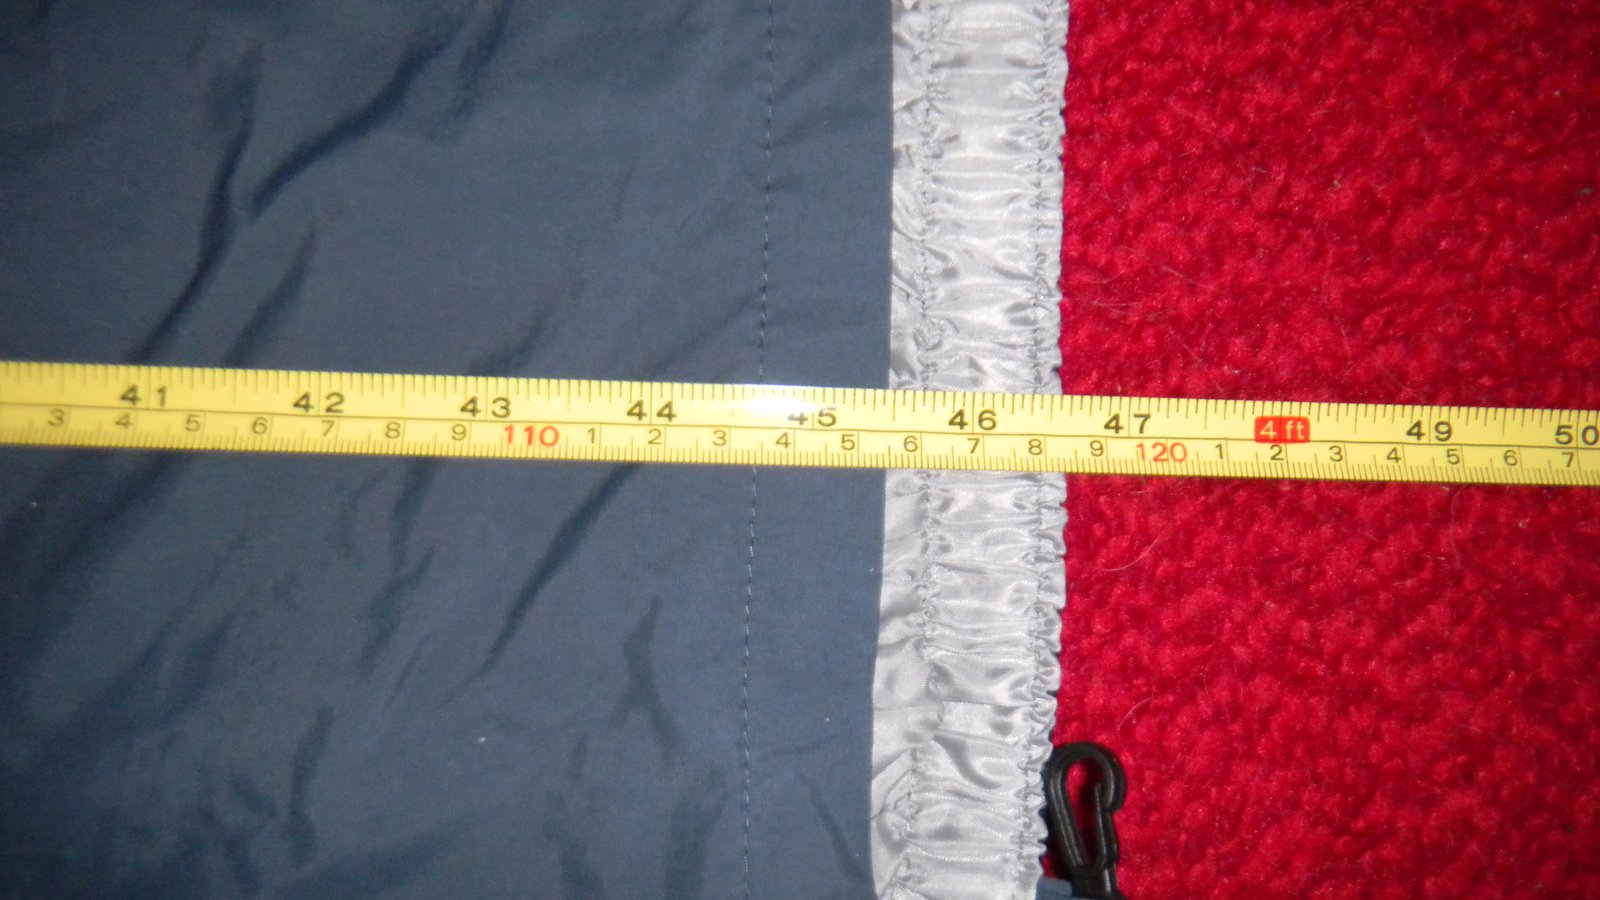 about 45 inches (pants)